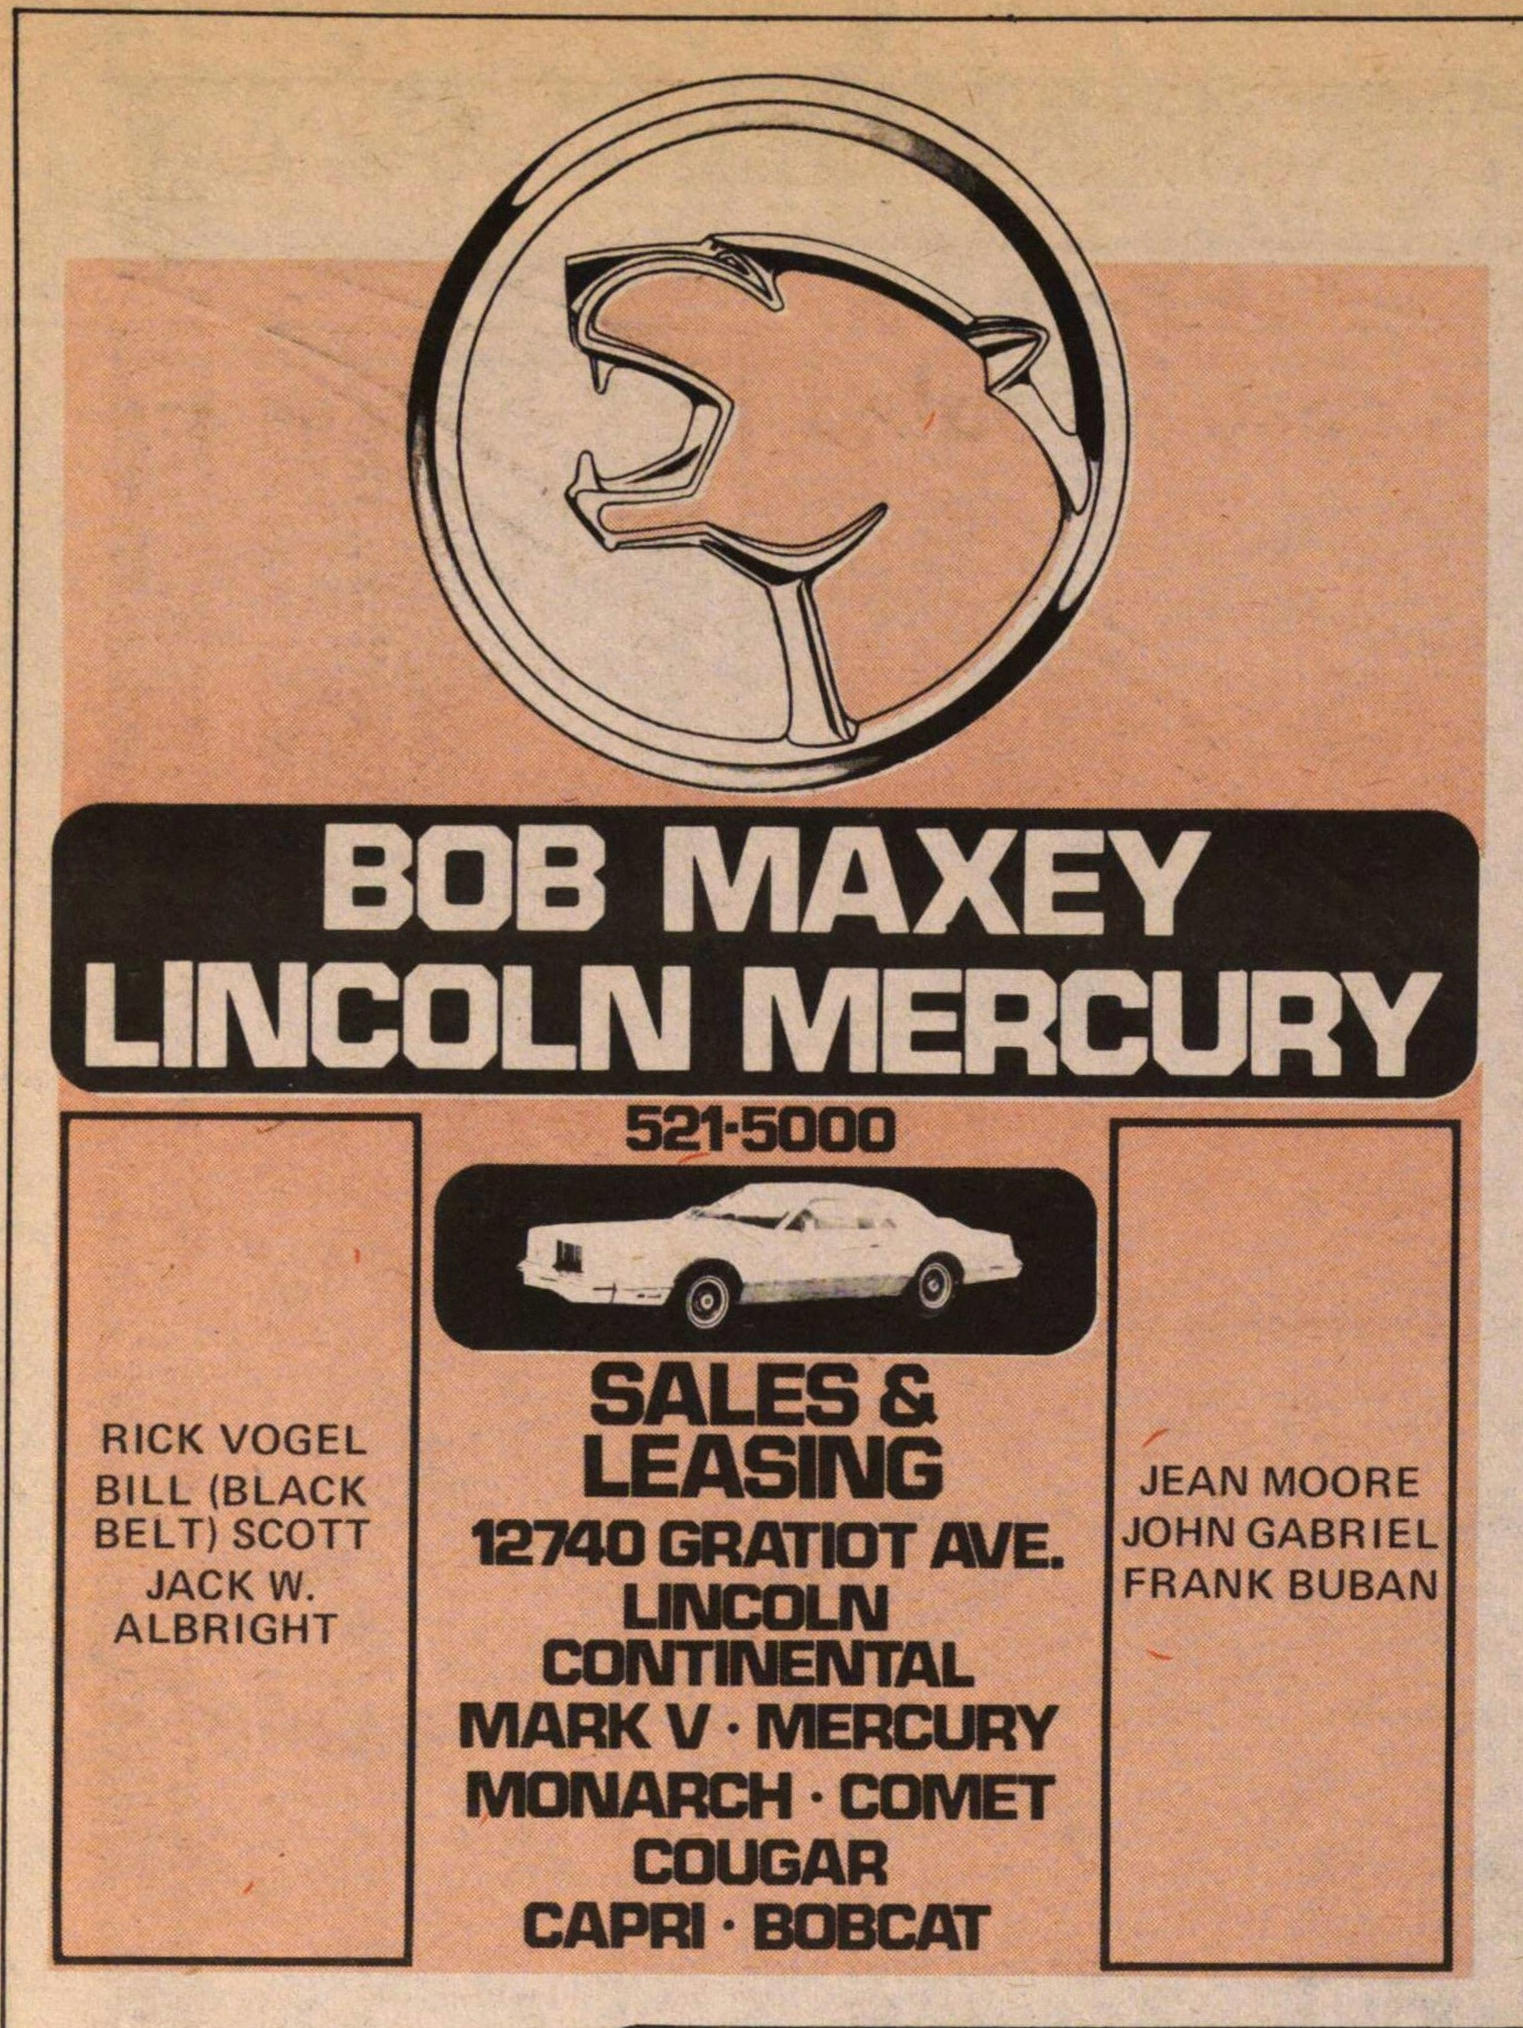 Bob Maxey Lincoln >> Bob Maxey Lincoln Mercury Ann Arbor District Library